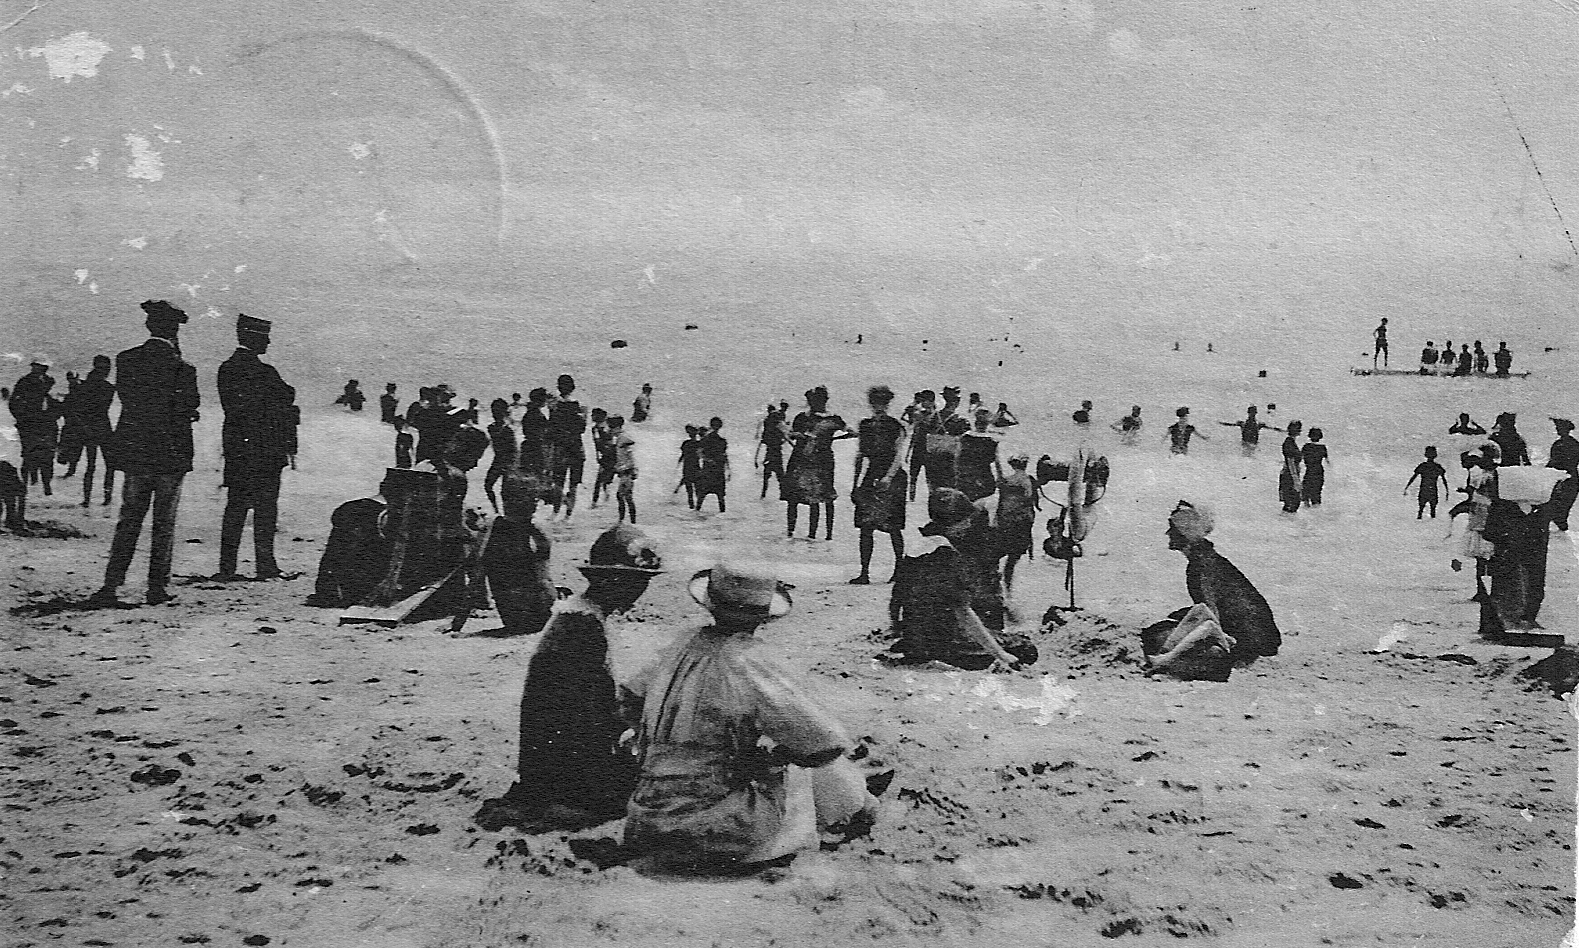 Bellport beach at OldInlet 1920.jpg